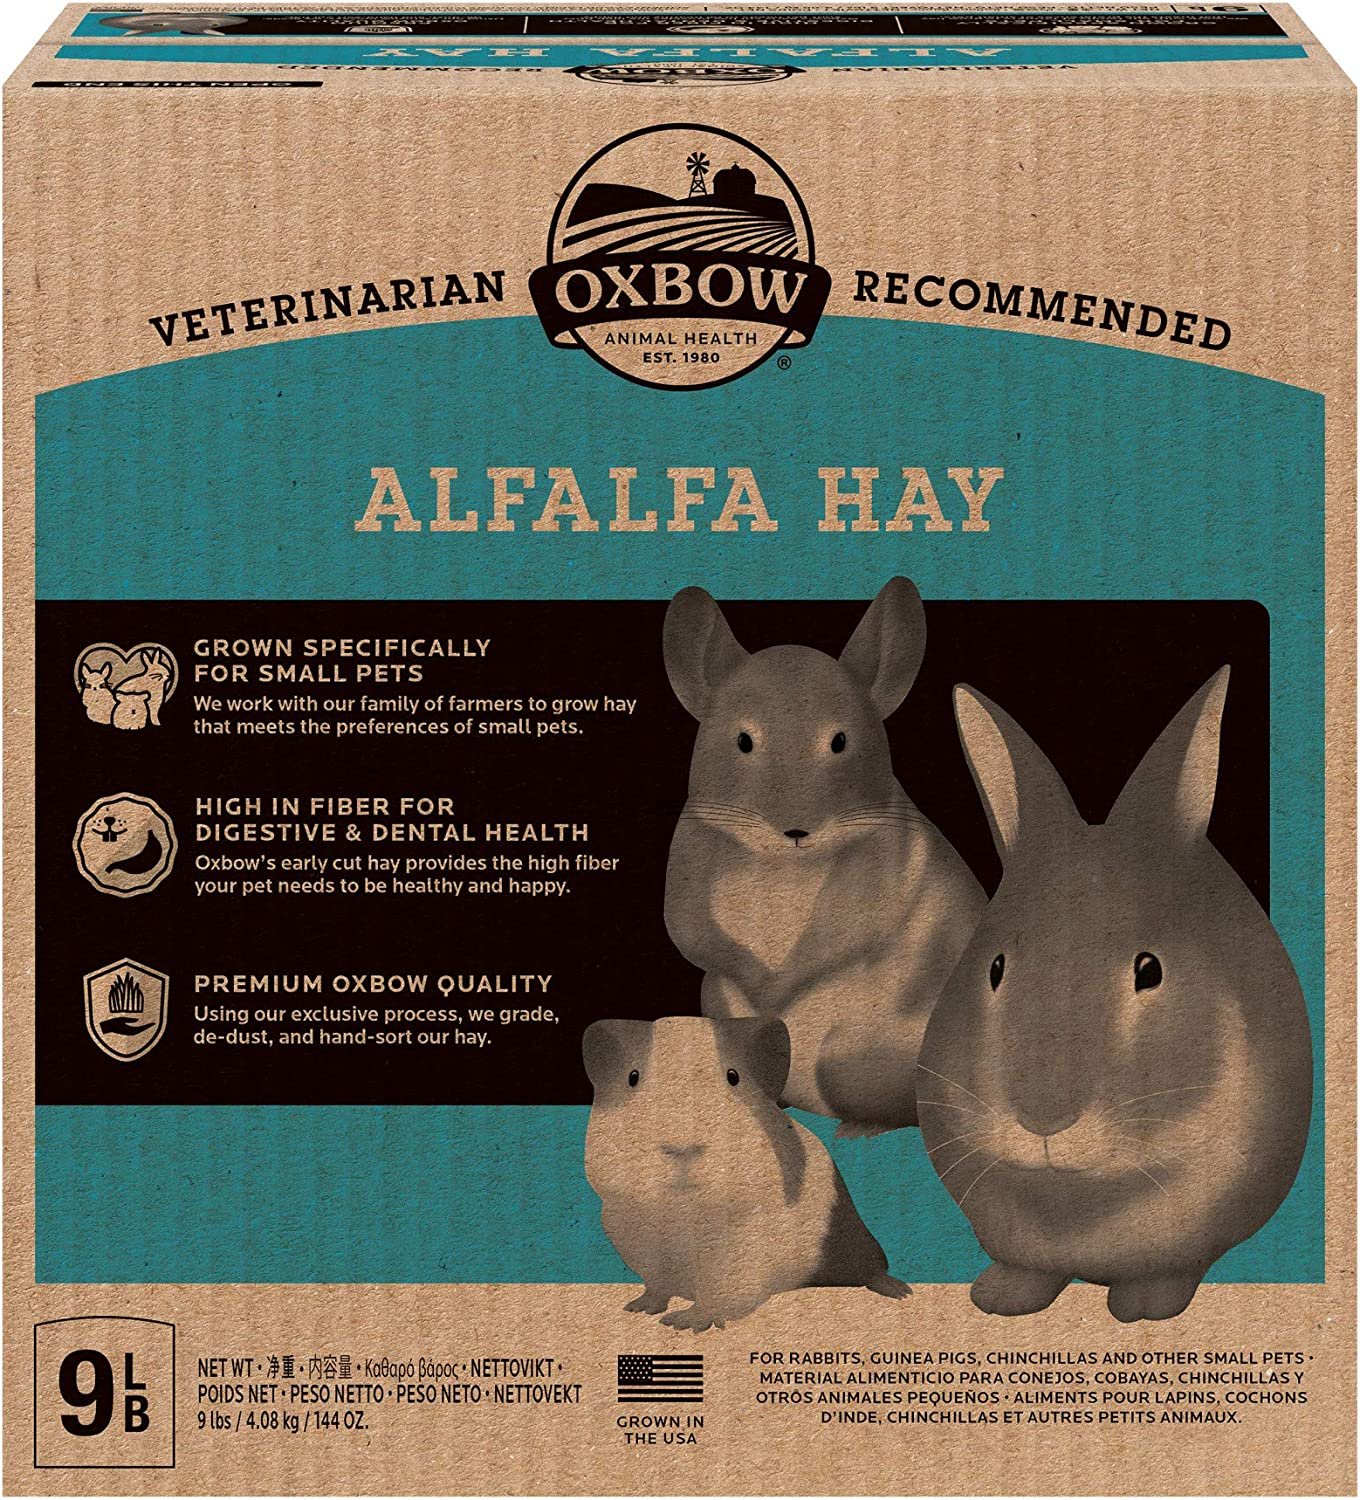 Oxbow Animal Health Alfalfa Hay - All Natural Hay for Young, Pregnant, or Nursing Small Pets - 9 lb.